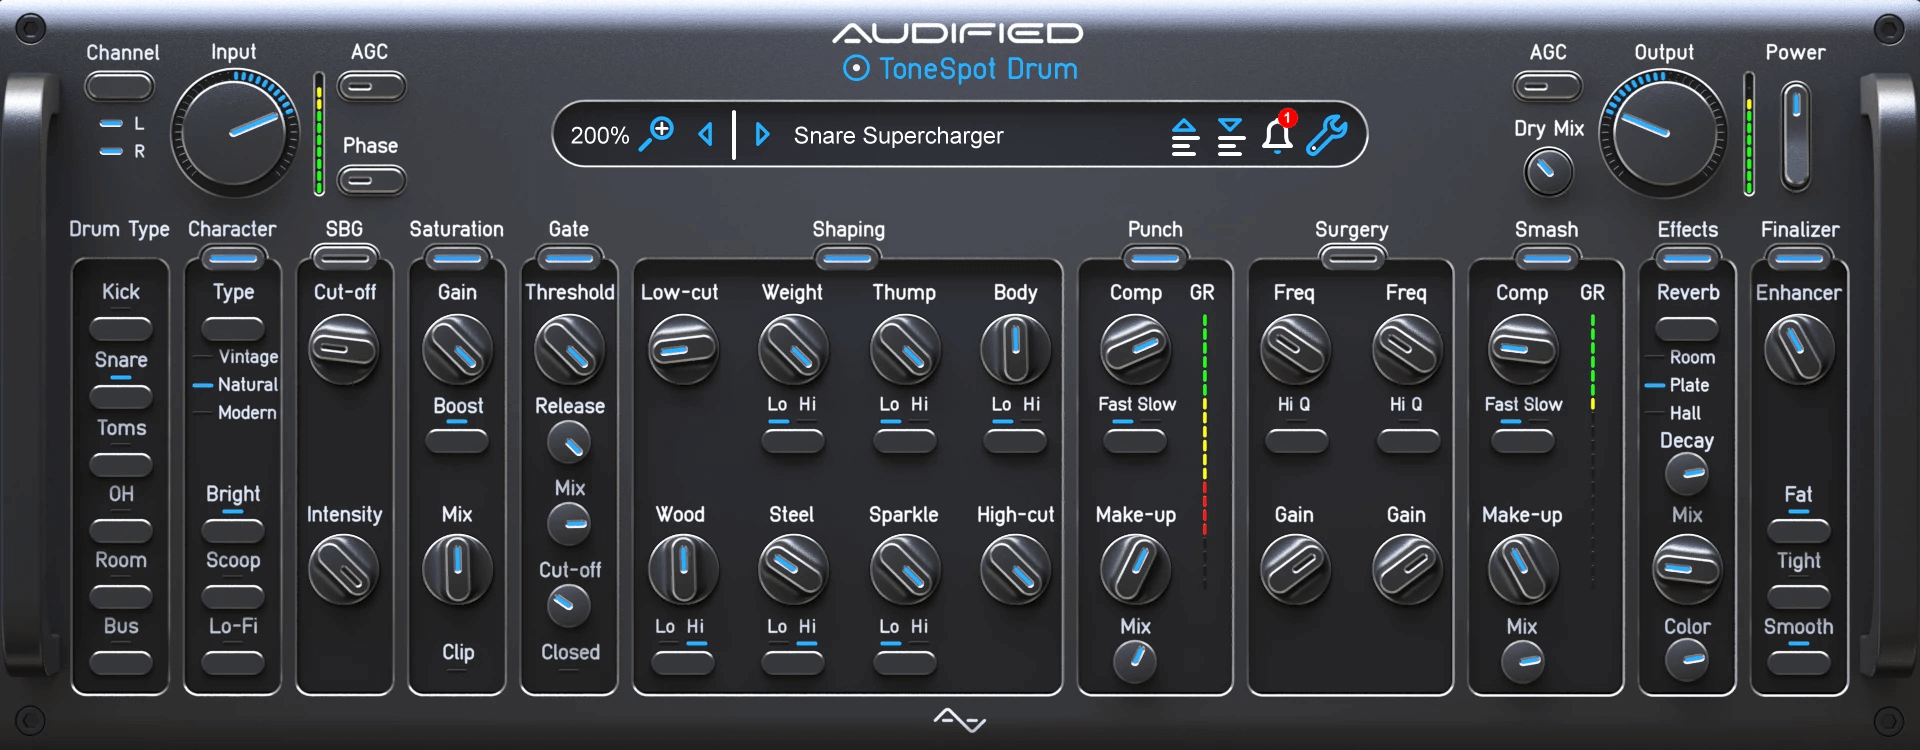 Audified ToneSpot Drum Pro Plugins PluginFox